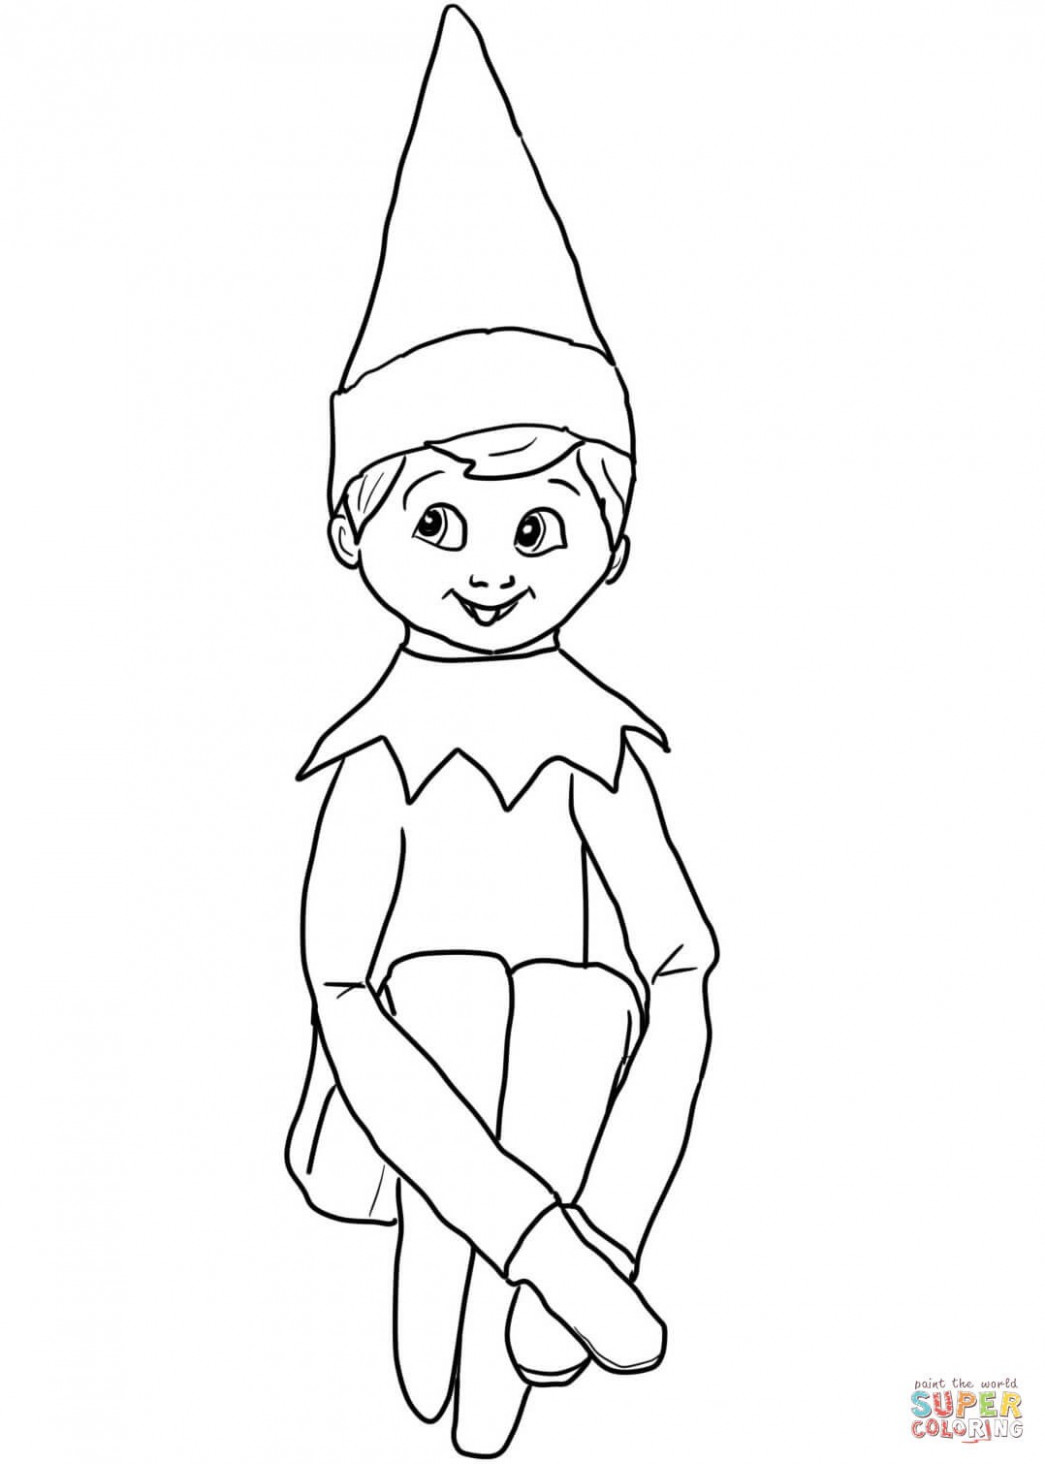 Christmas Elf Coloring Pages Printable | lrcp.info – Coloring page